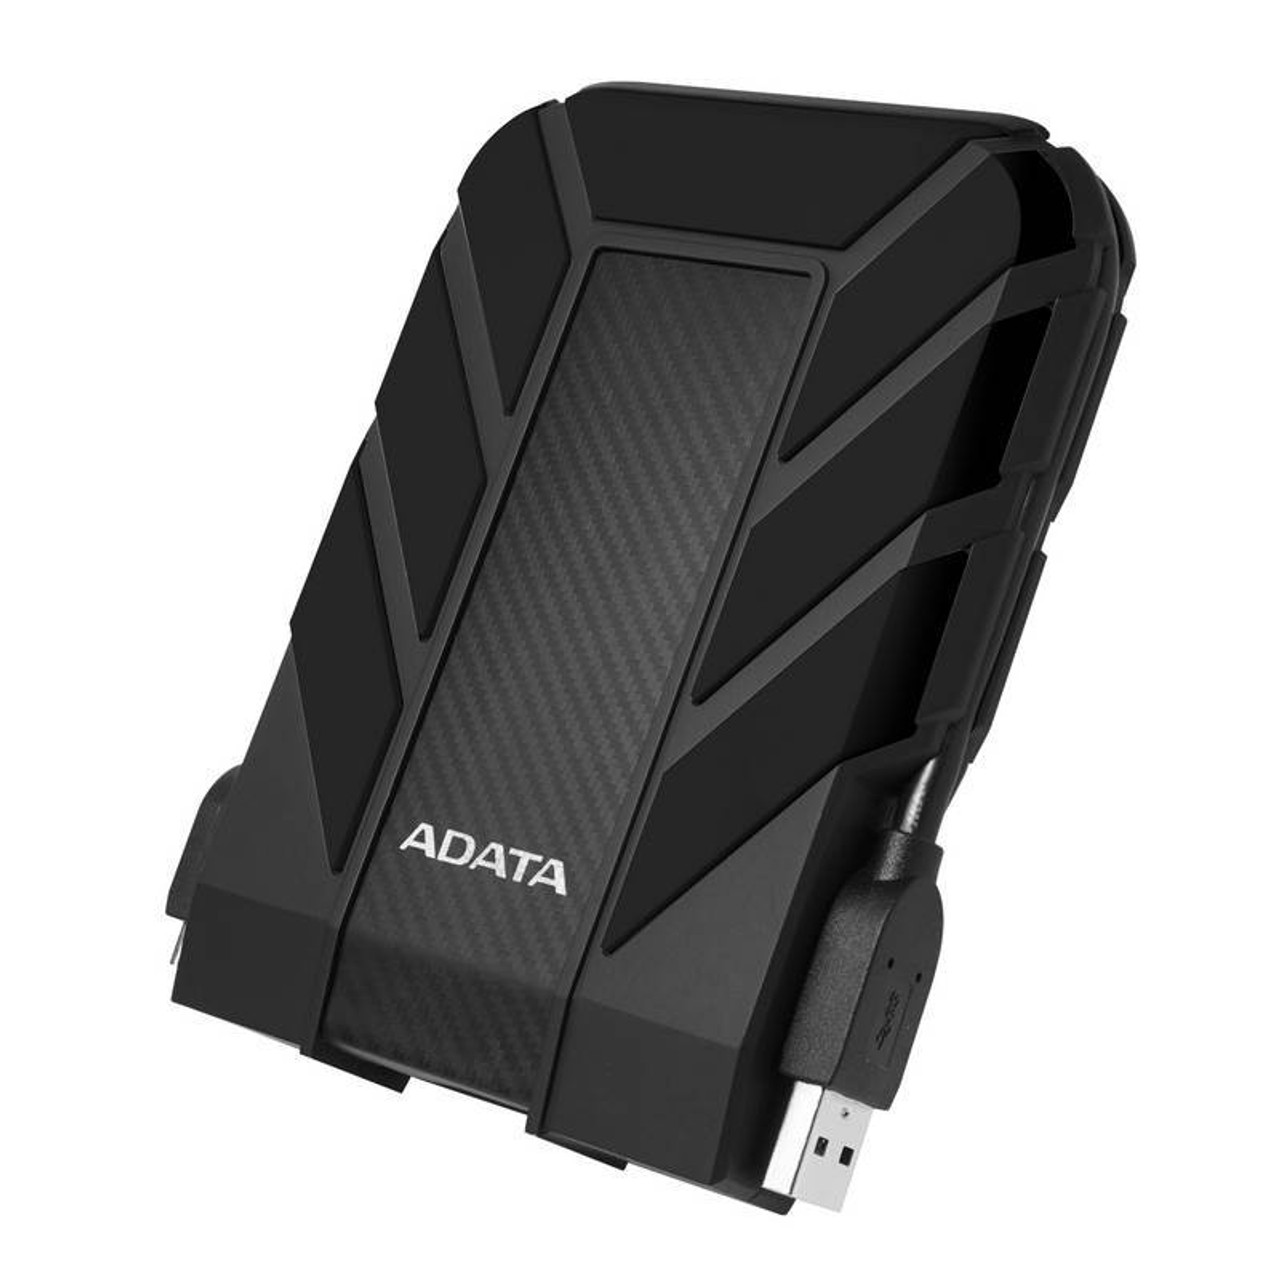 Image for Adata Rugged Pro HD710 5TB USB 3.1 Portable External Hard Drive - Black CX Computer Superstore